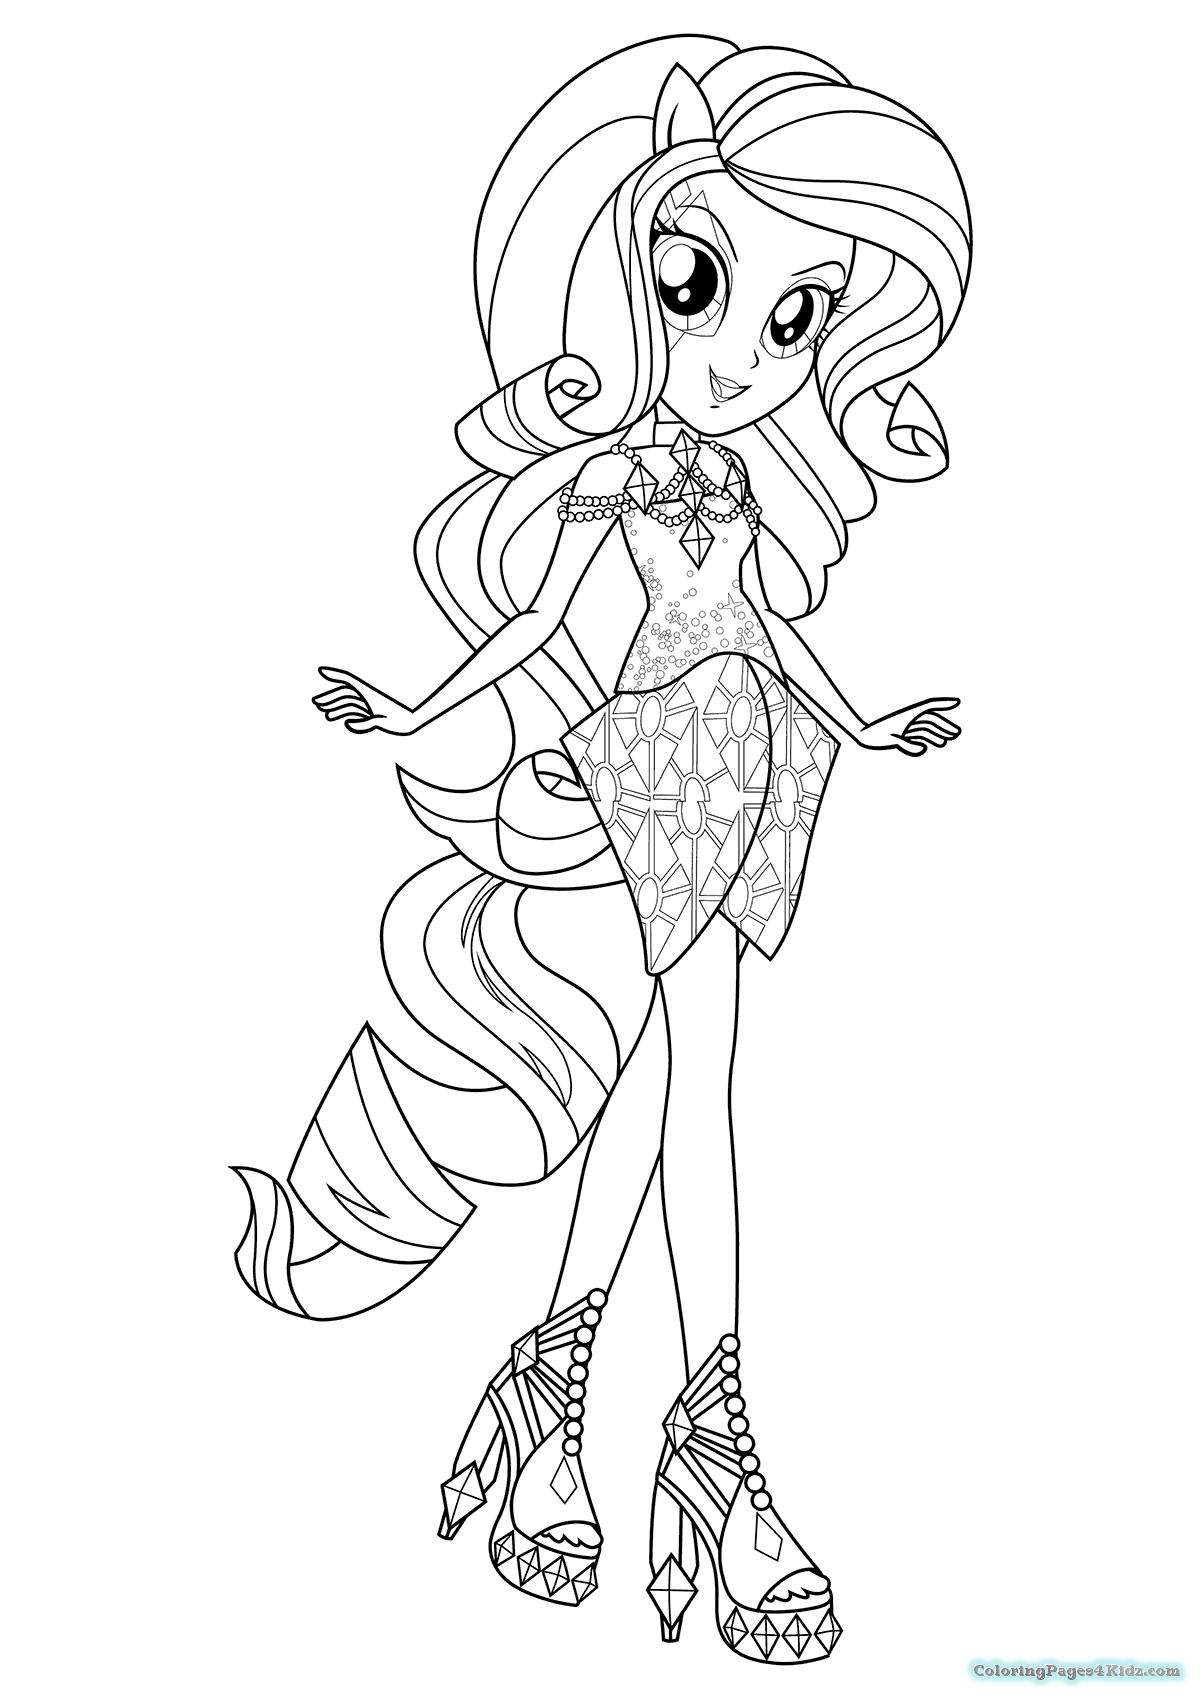 equestria girls mlp coloring page my little pony equestria girls coloring pages my little page girls mlp coloring equestria